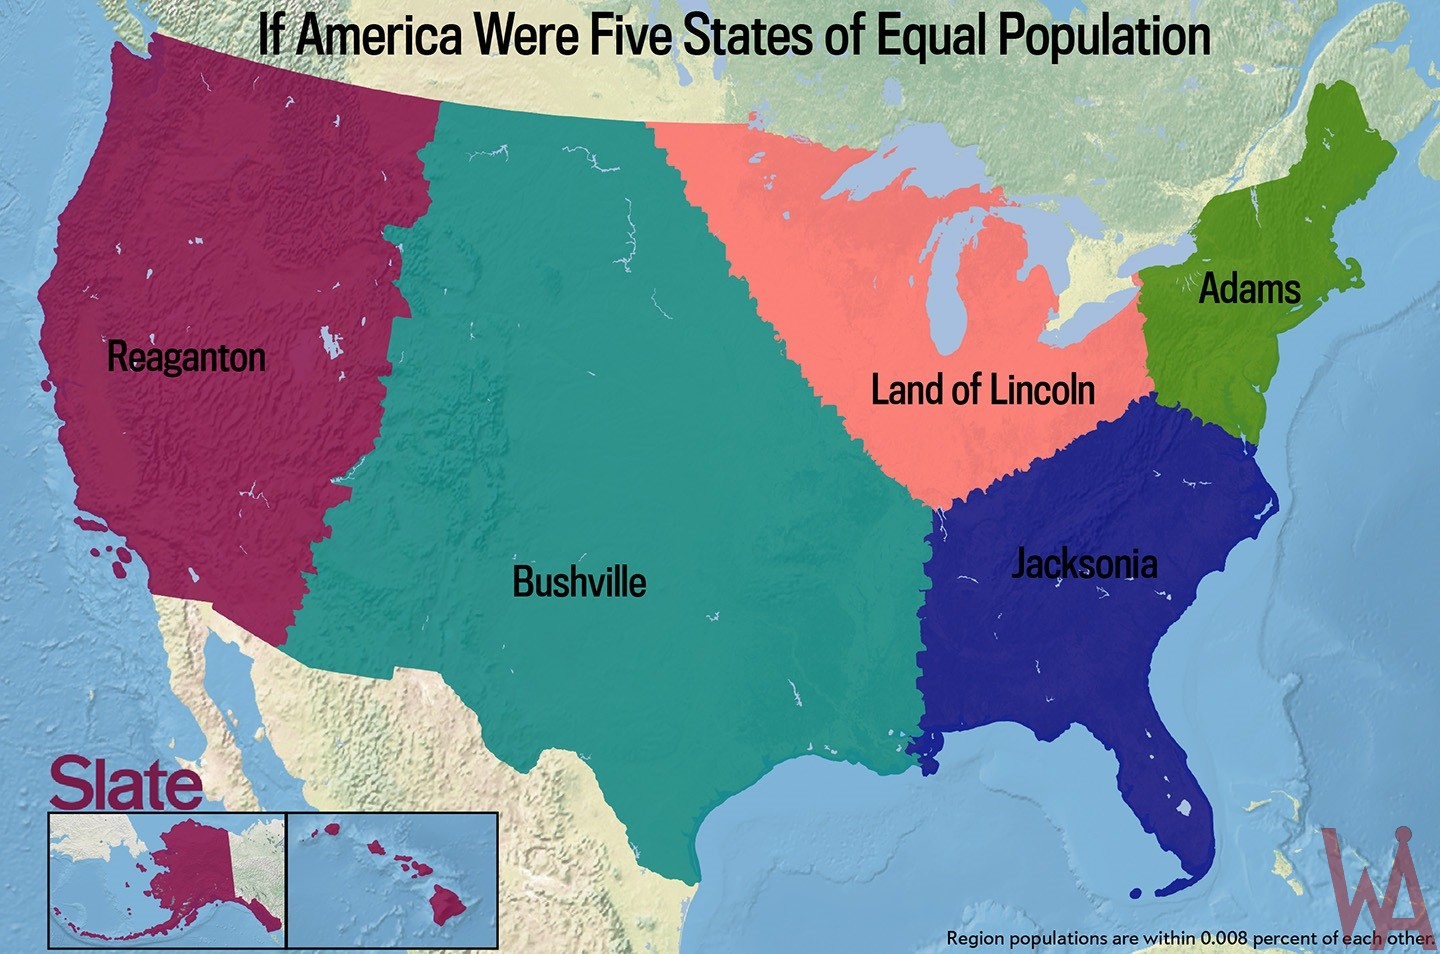 Equal Population map 2 of the United States